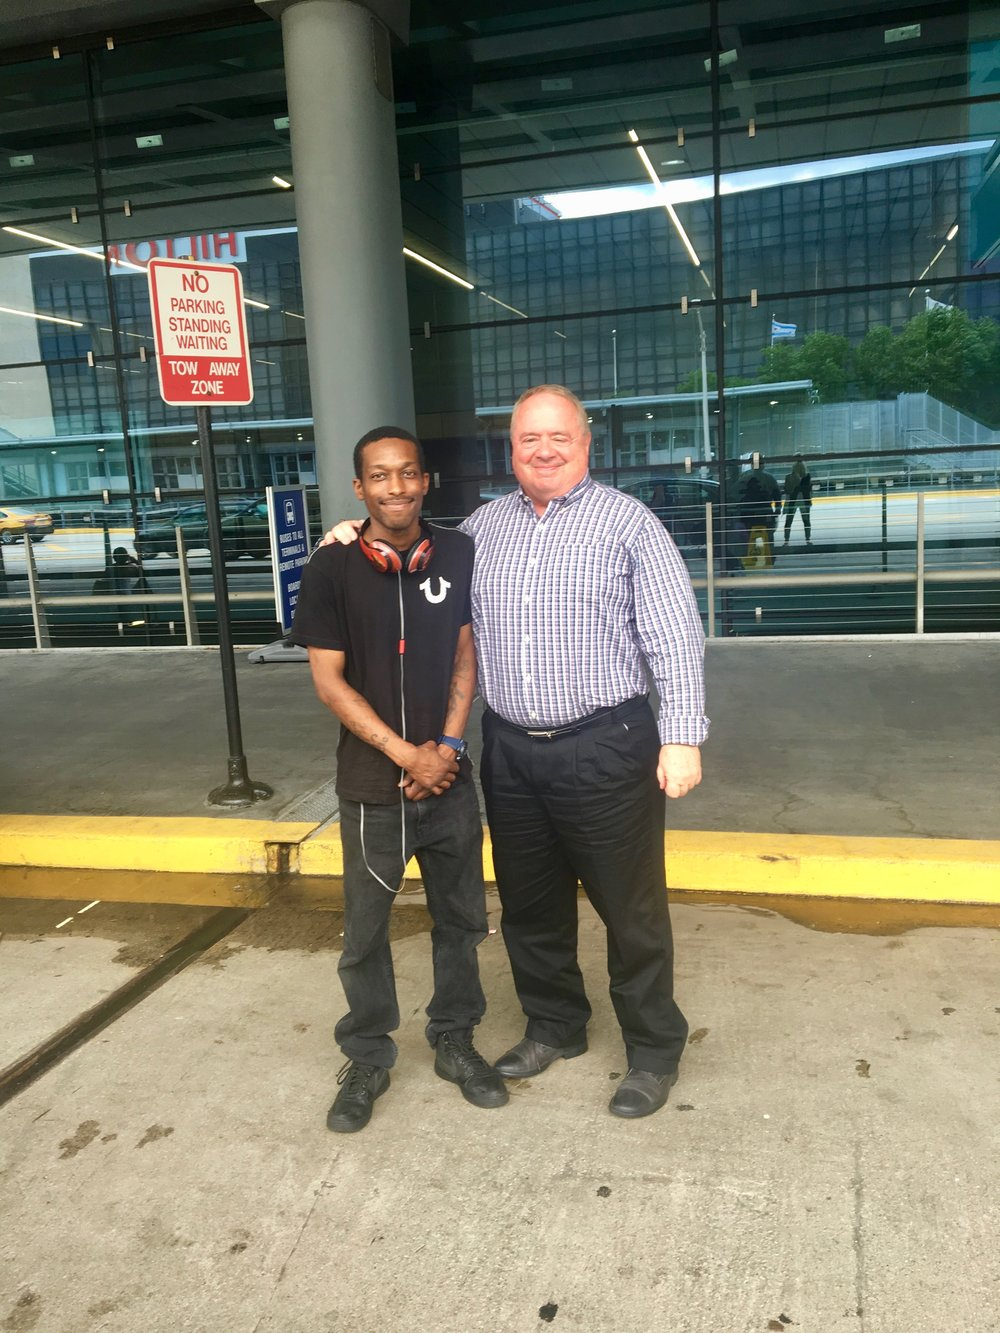 Vontae and Tom smile for a picture before dropping me off at the airport.